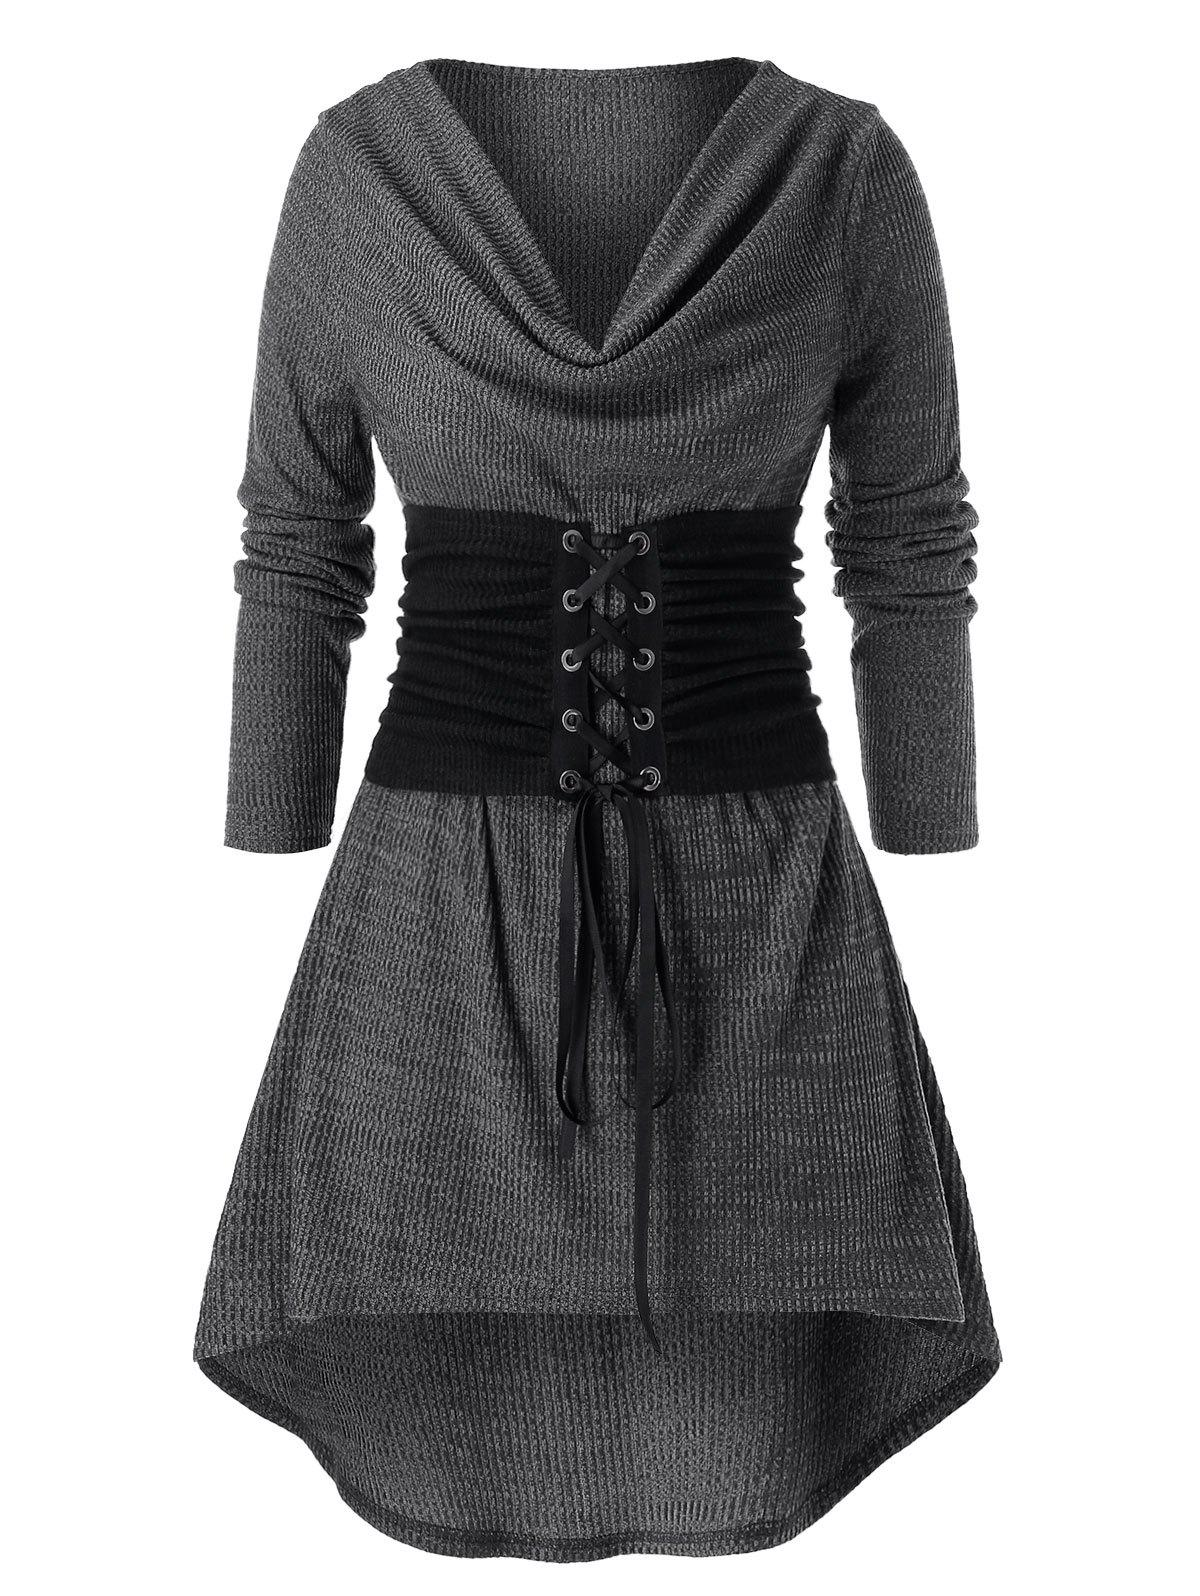 Plus Size Lace-up Front High Low Ribbed T-shirt - DARK GRAY 2X